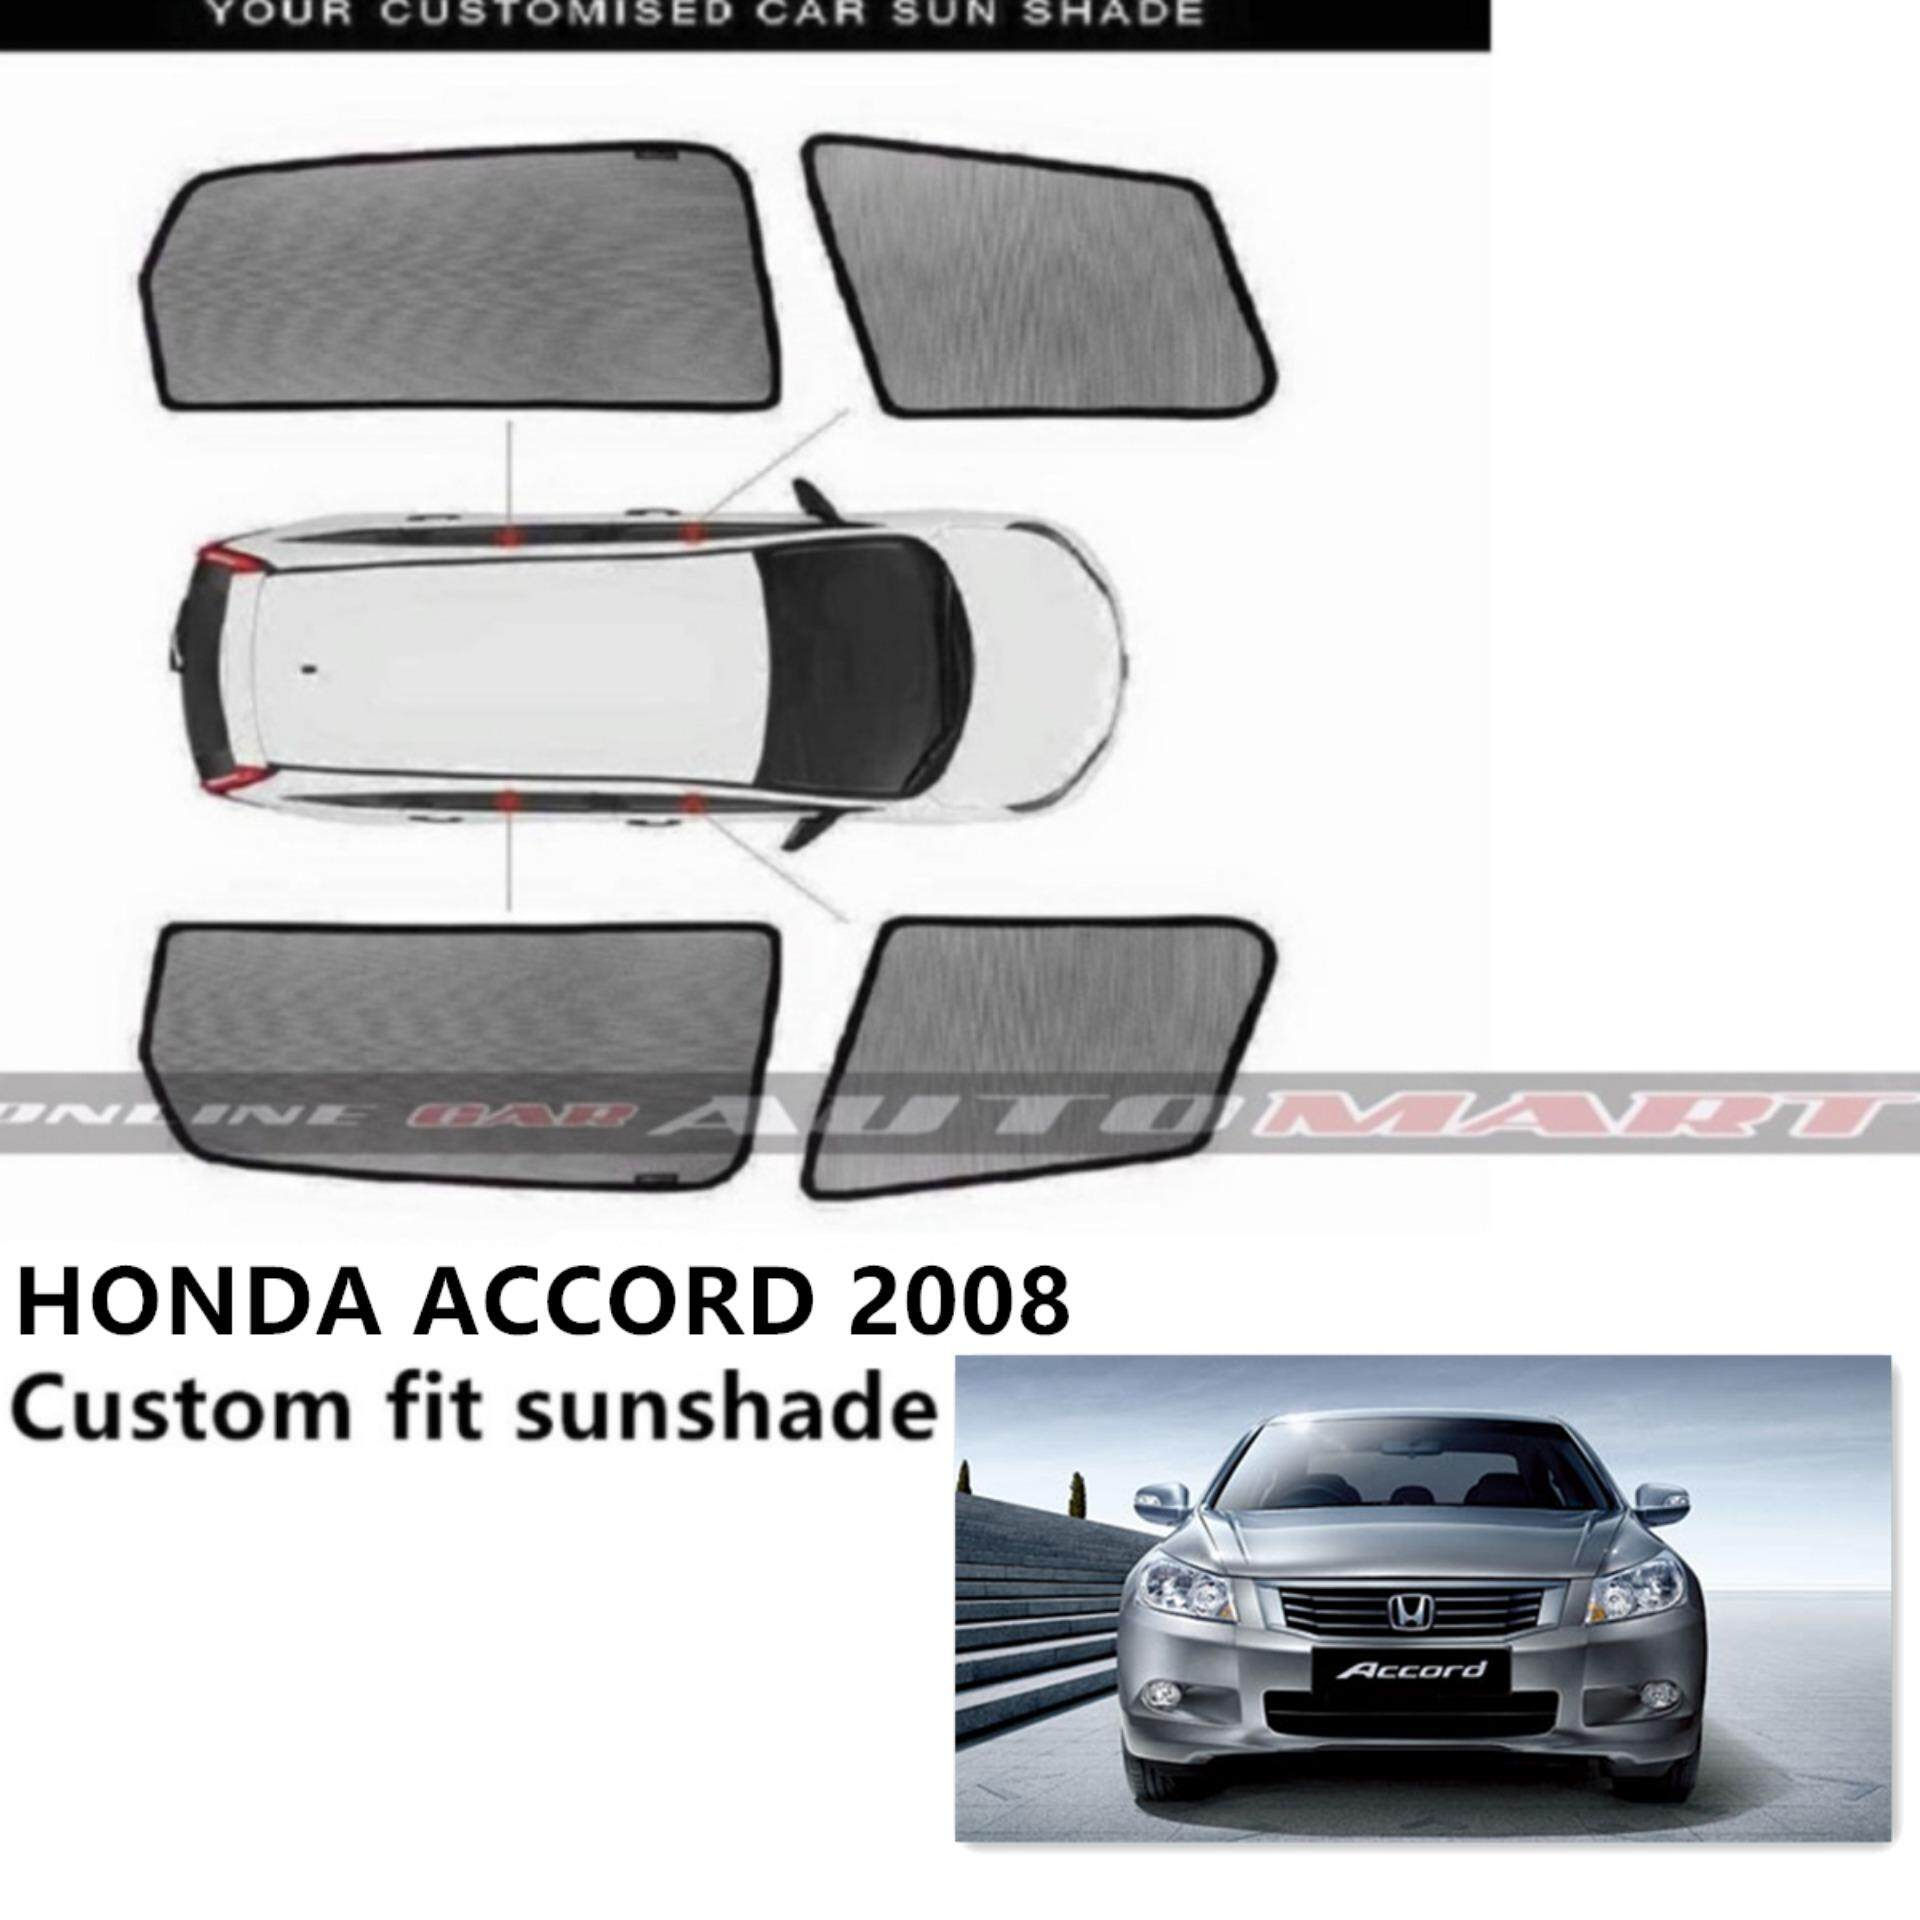 Custom Fit OEM Sunshades/ Sun shades for Honda Accord Yr 2008 - 4pcs